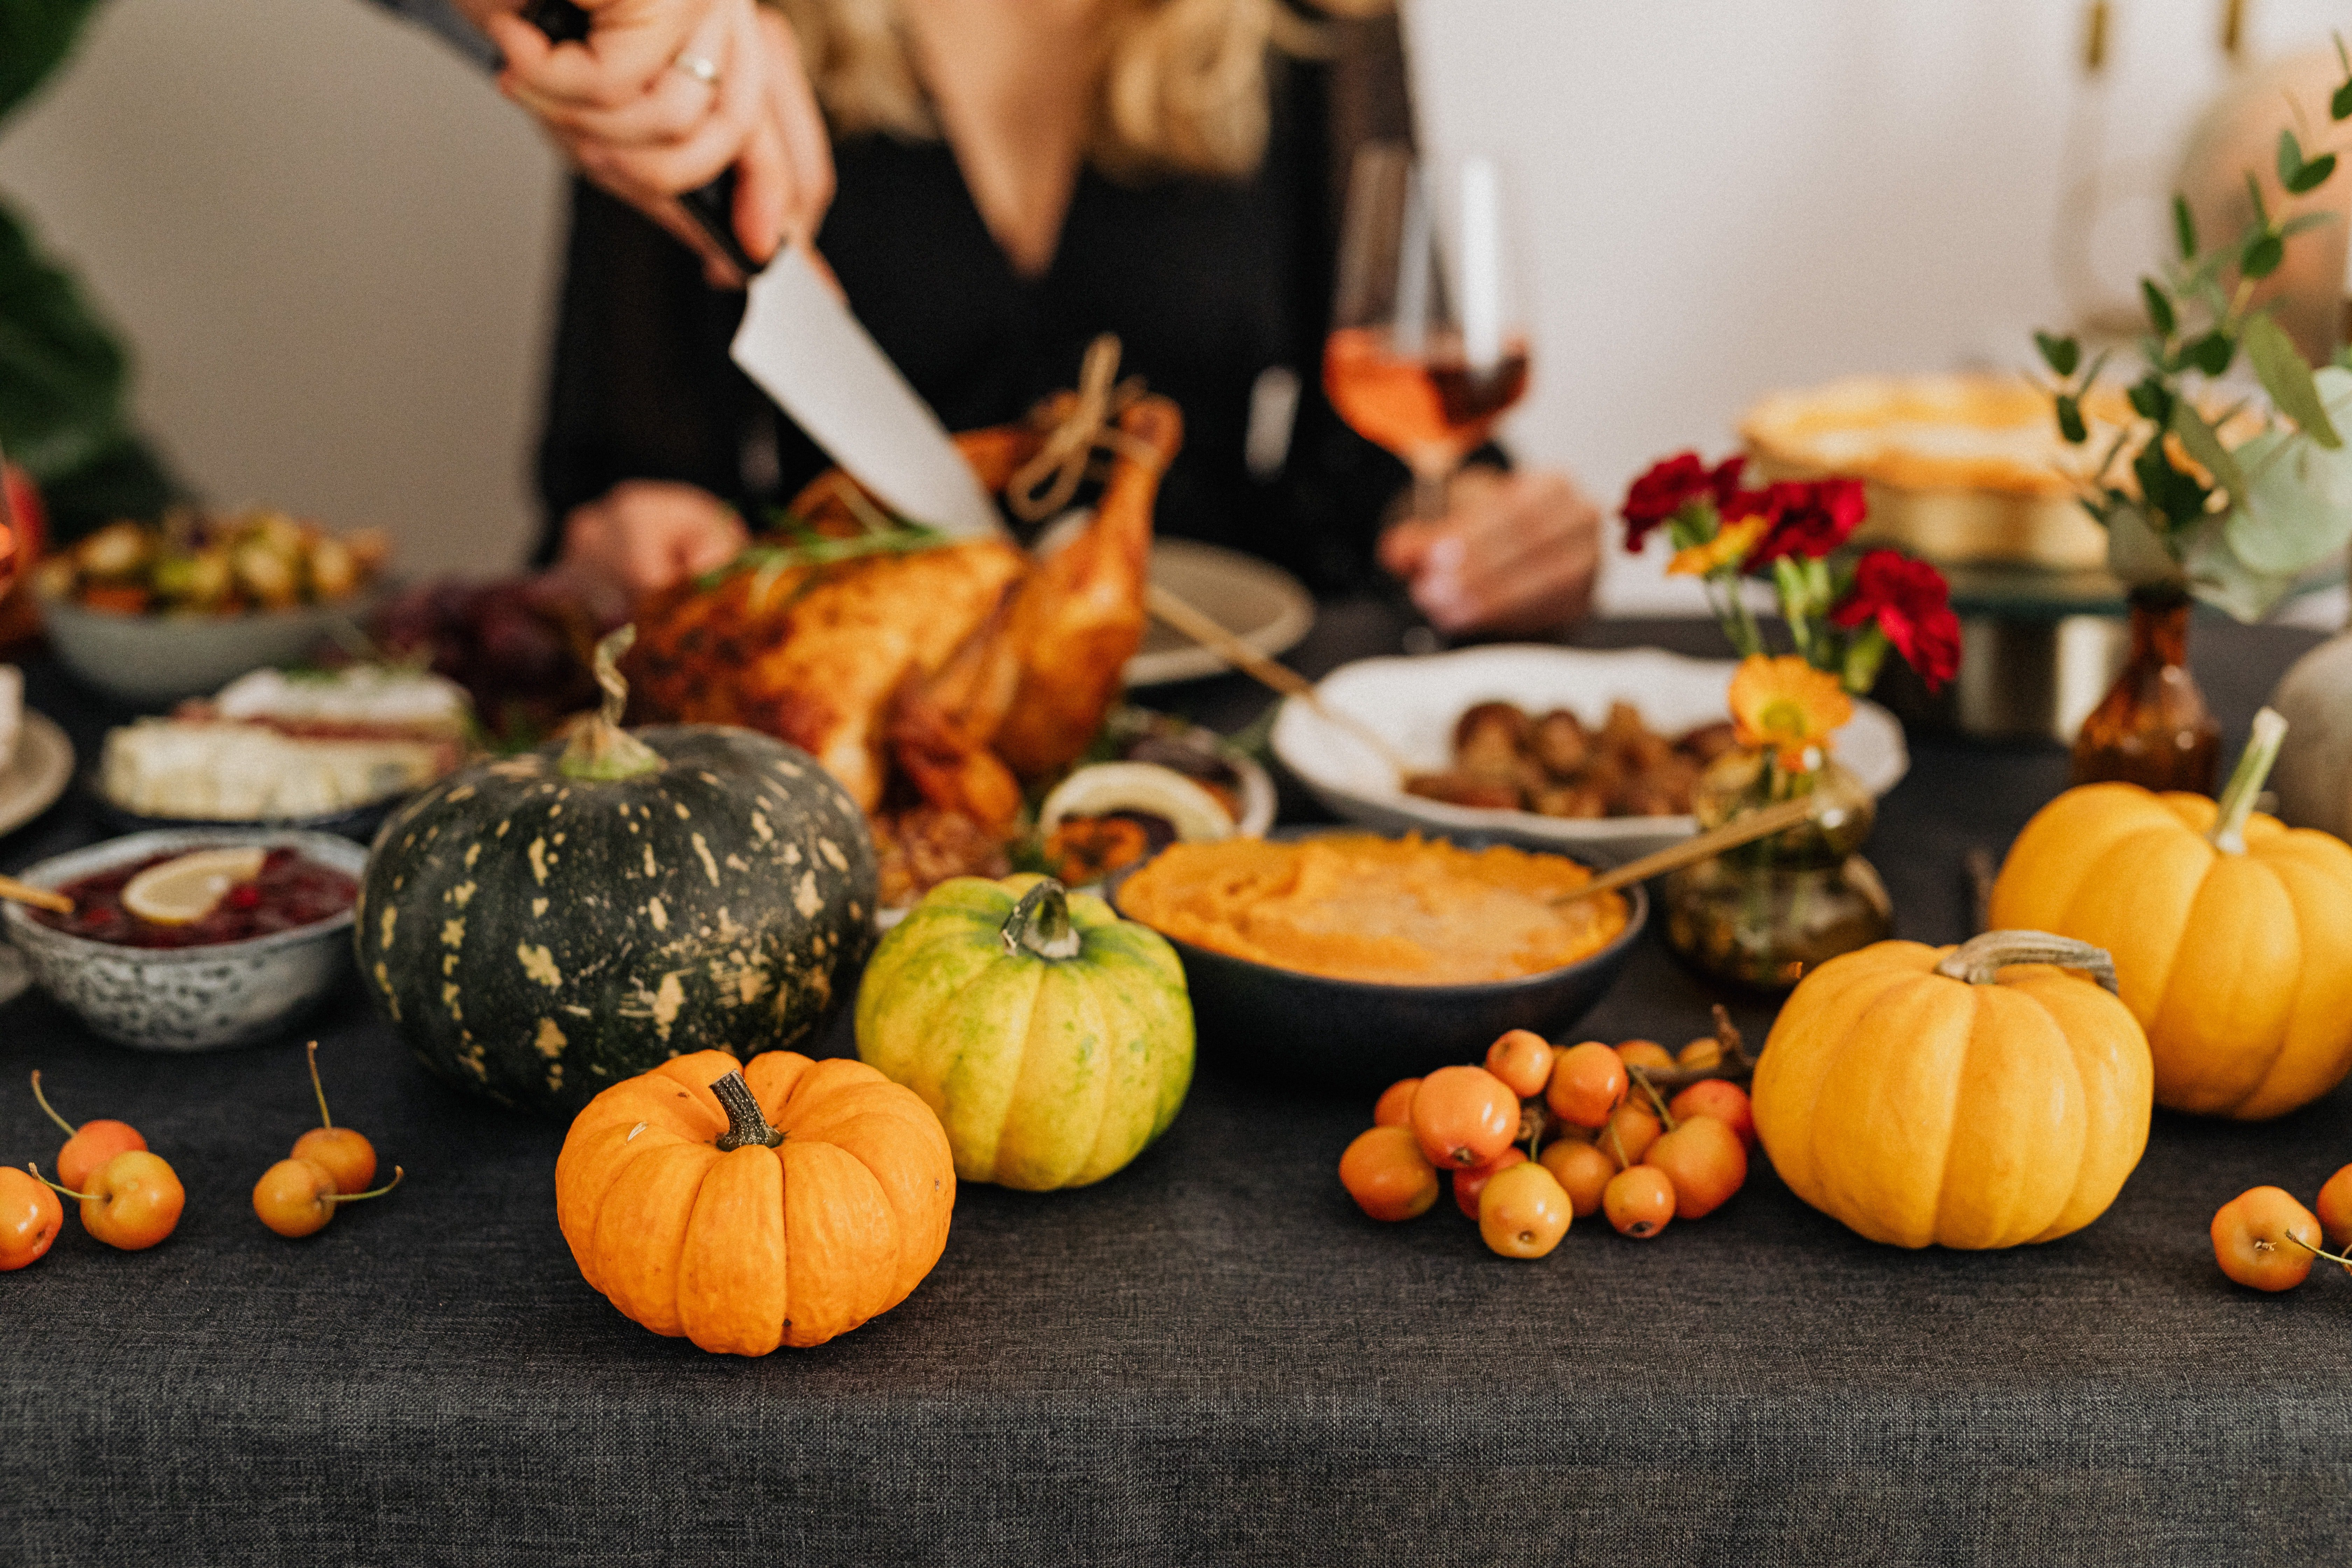 Happy Thanksgiving from PCS & TrainerTainment Raffle